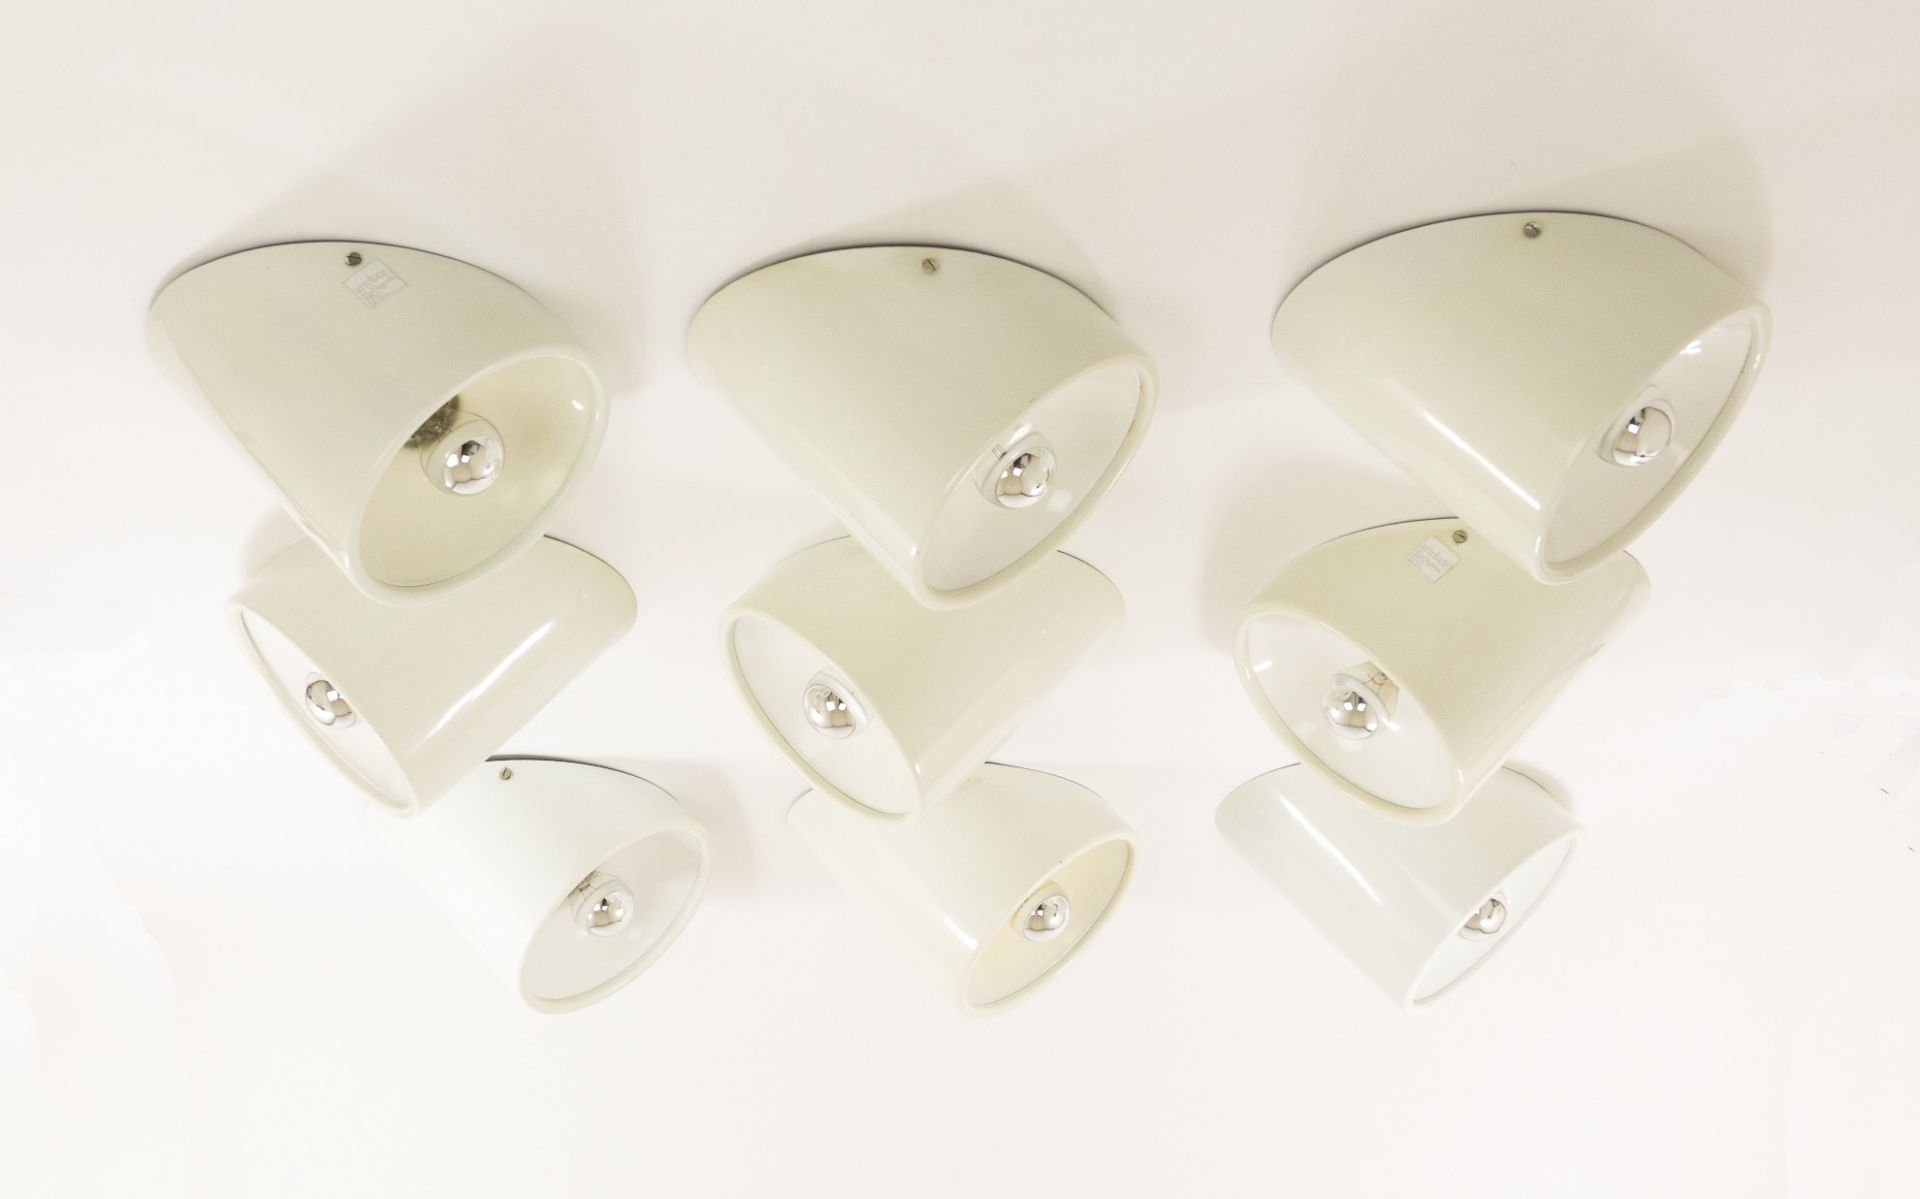 Set of wall or ceiling fixtures, No. 235/b, by Cini Boeri for Arteluce, 1970s